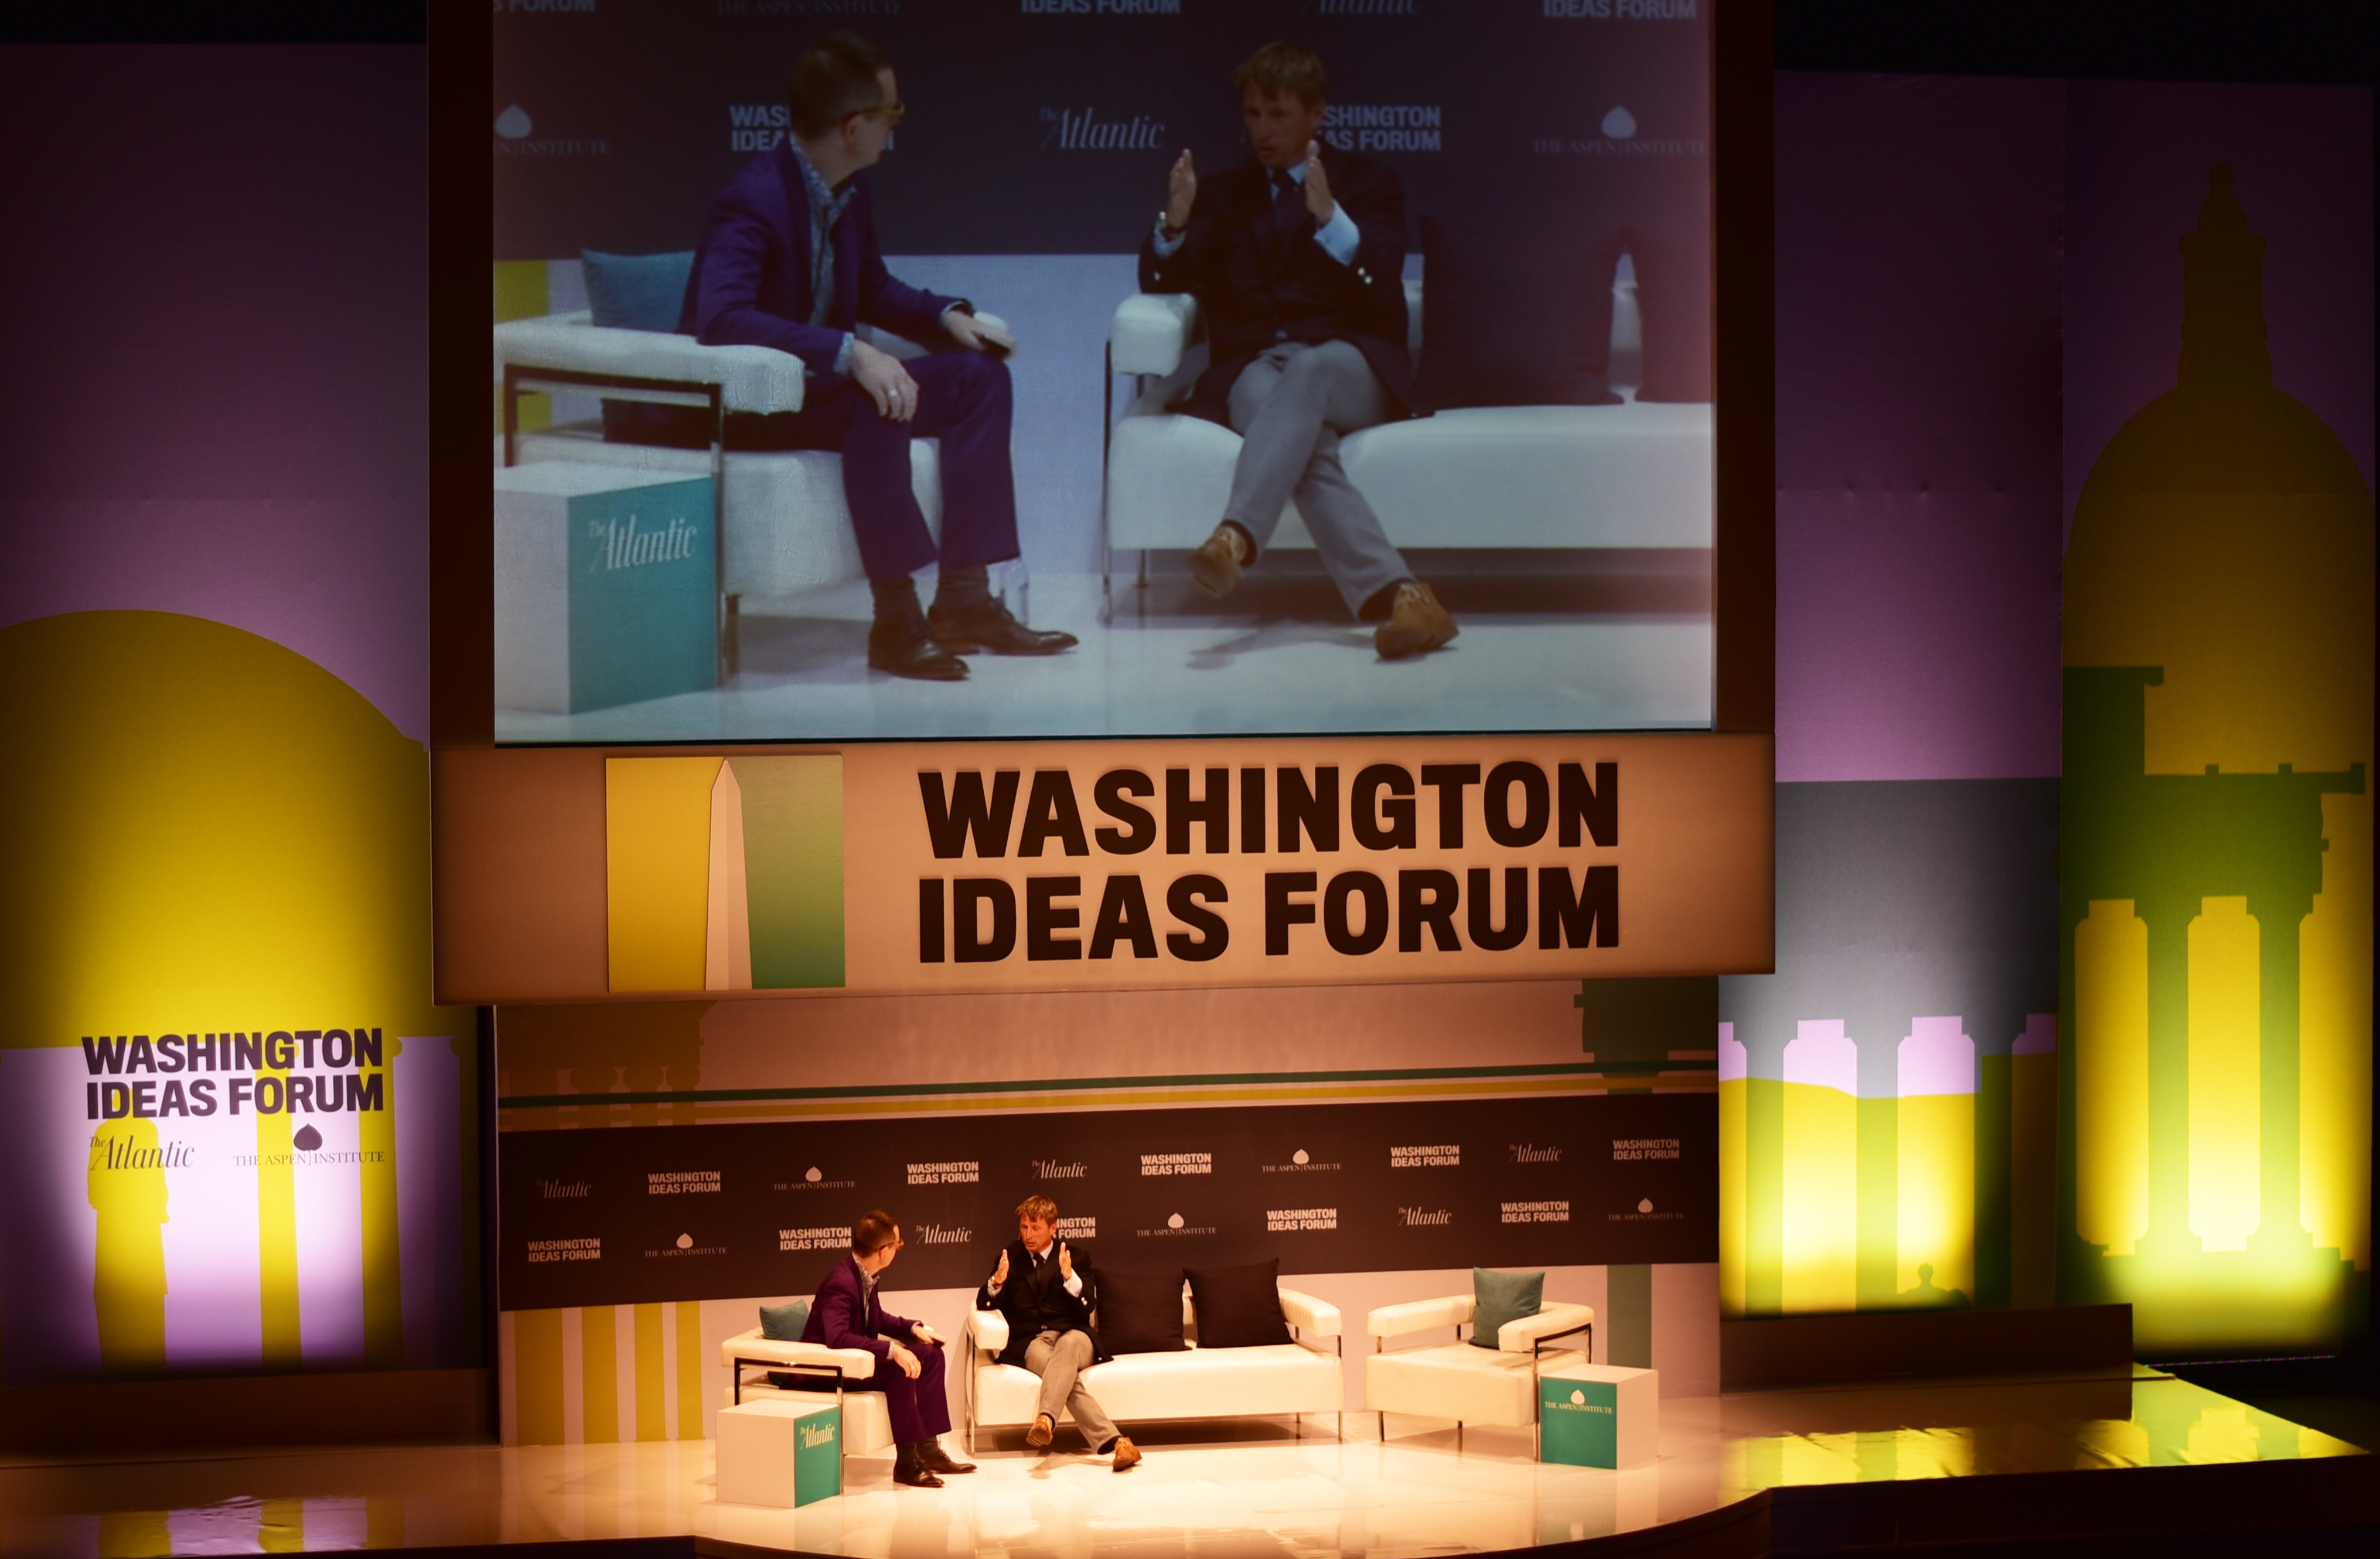 Journalists, mostly from Atlantic Magazine, interviewed newsmakers on September 30 and October 1, spreading ideas and information at the Washington Ideas Forum.